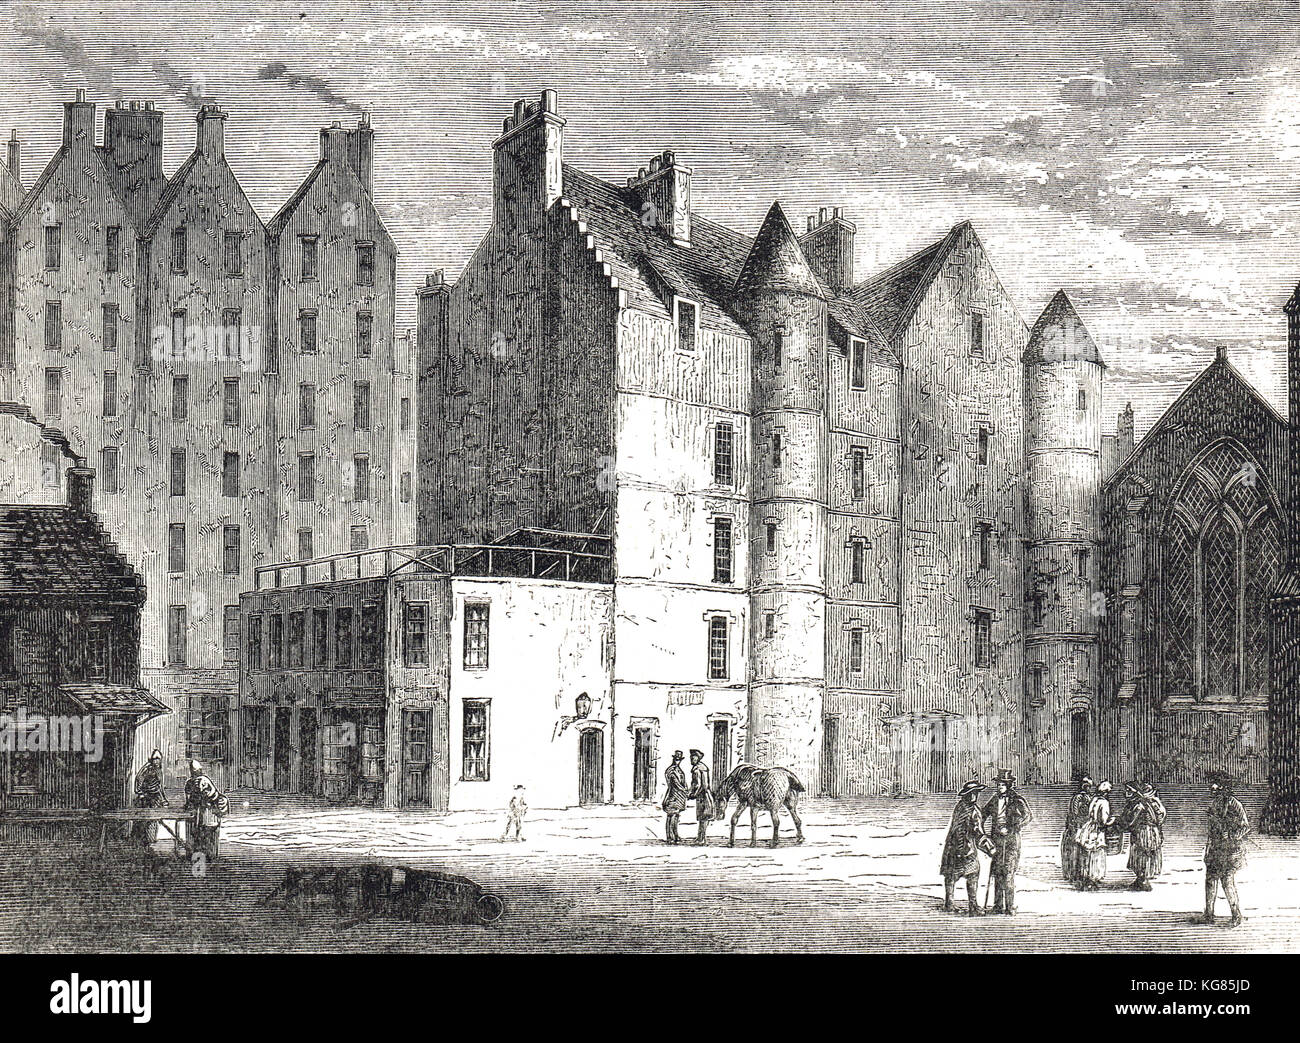 19th century engraving, Old Tolbooth, Edinburgh, Scotland - Stock Image